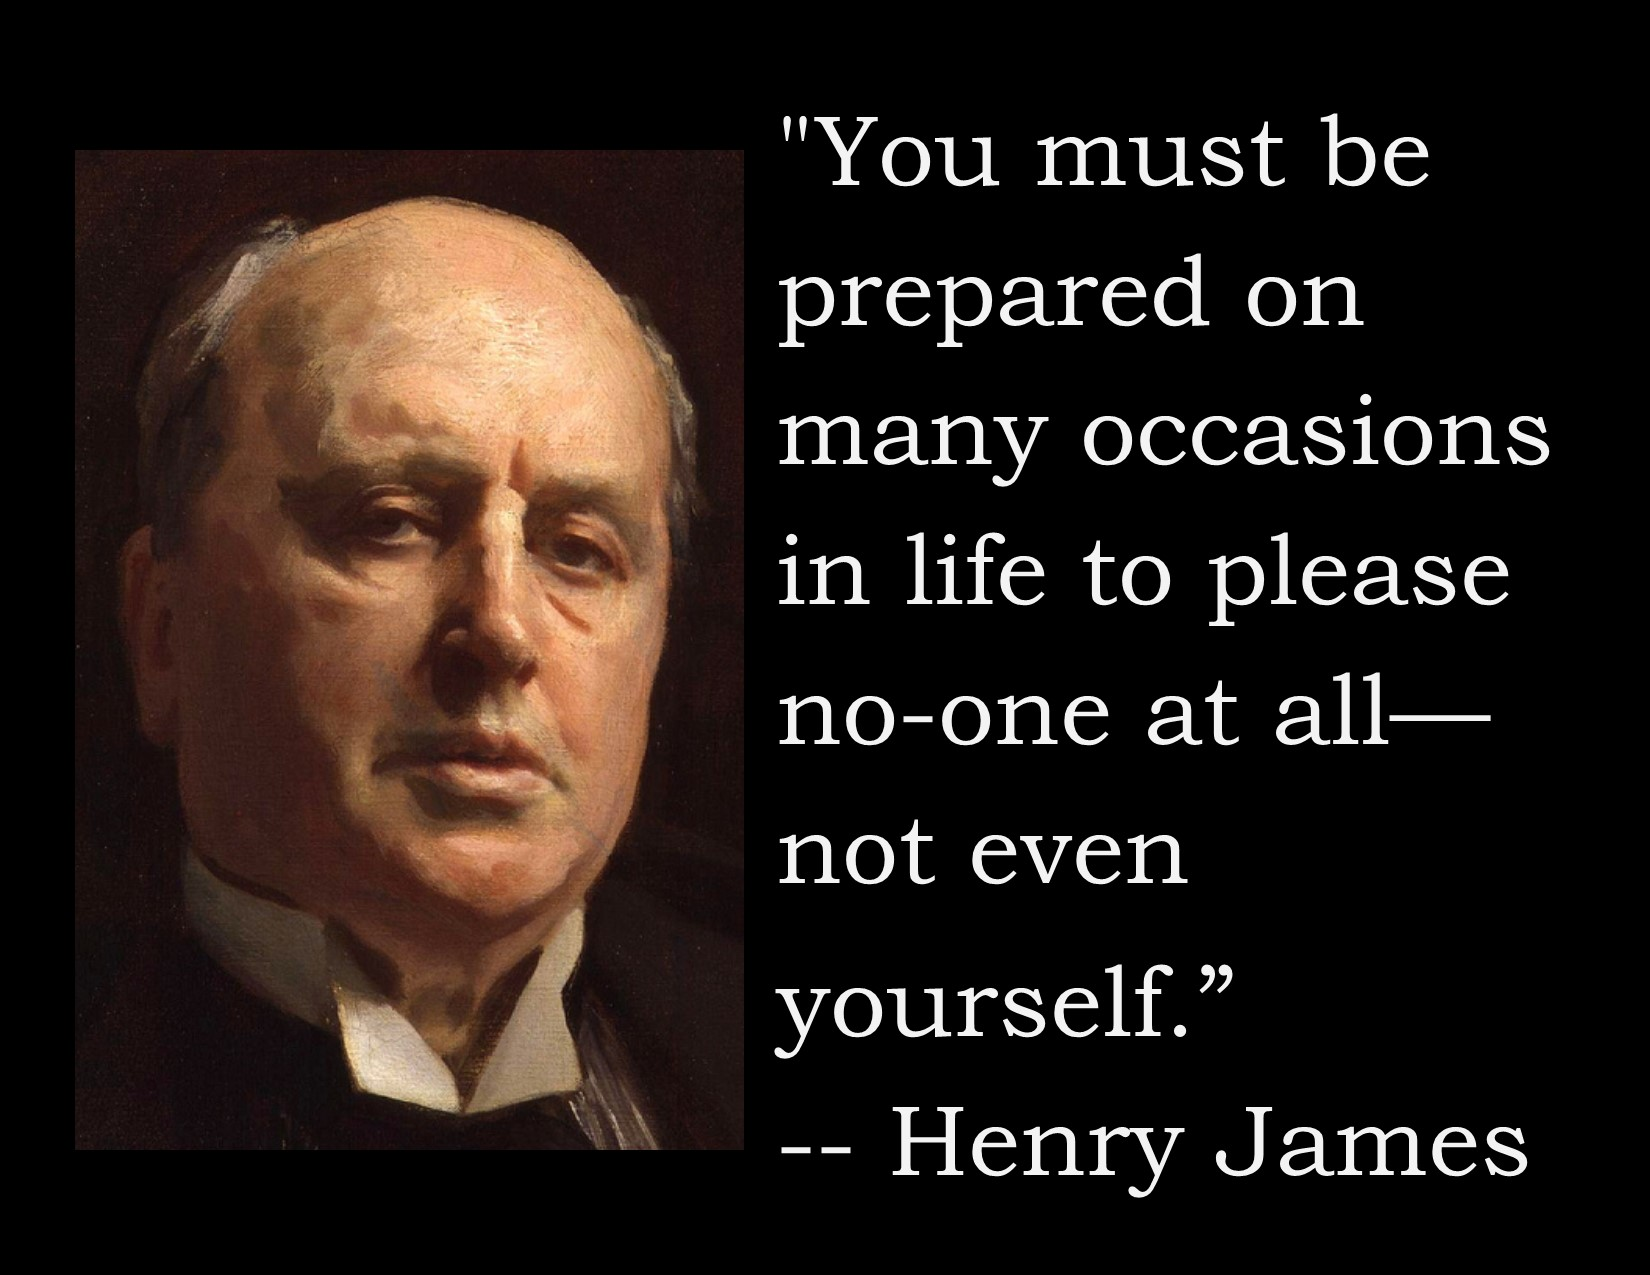 You must be prepared on many occasions in life to please no one at all–not even yourself. ~Henry James [OC] [1650 x 1275]